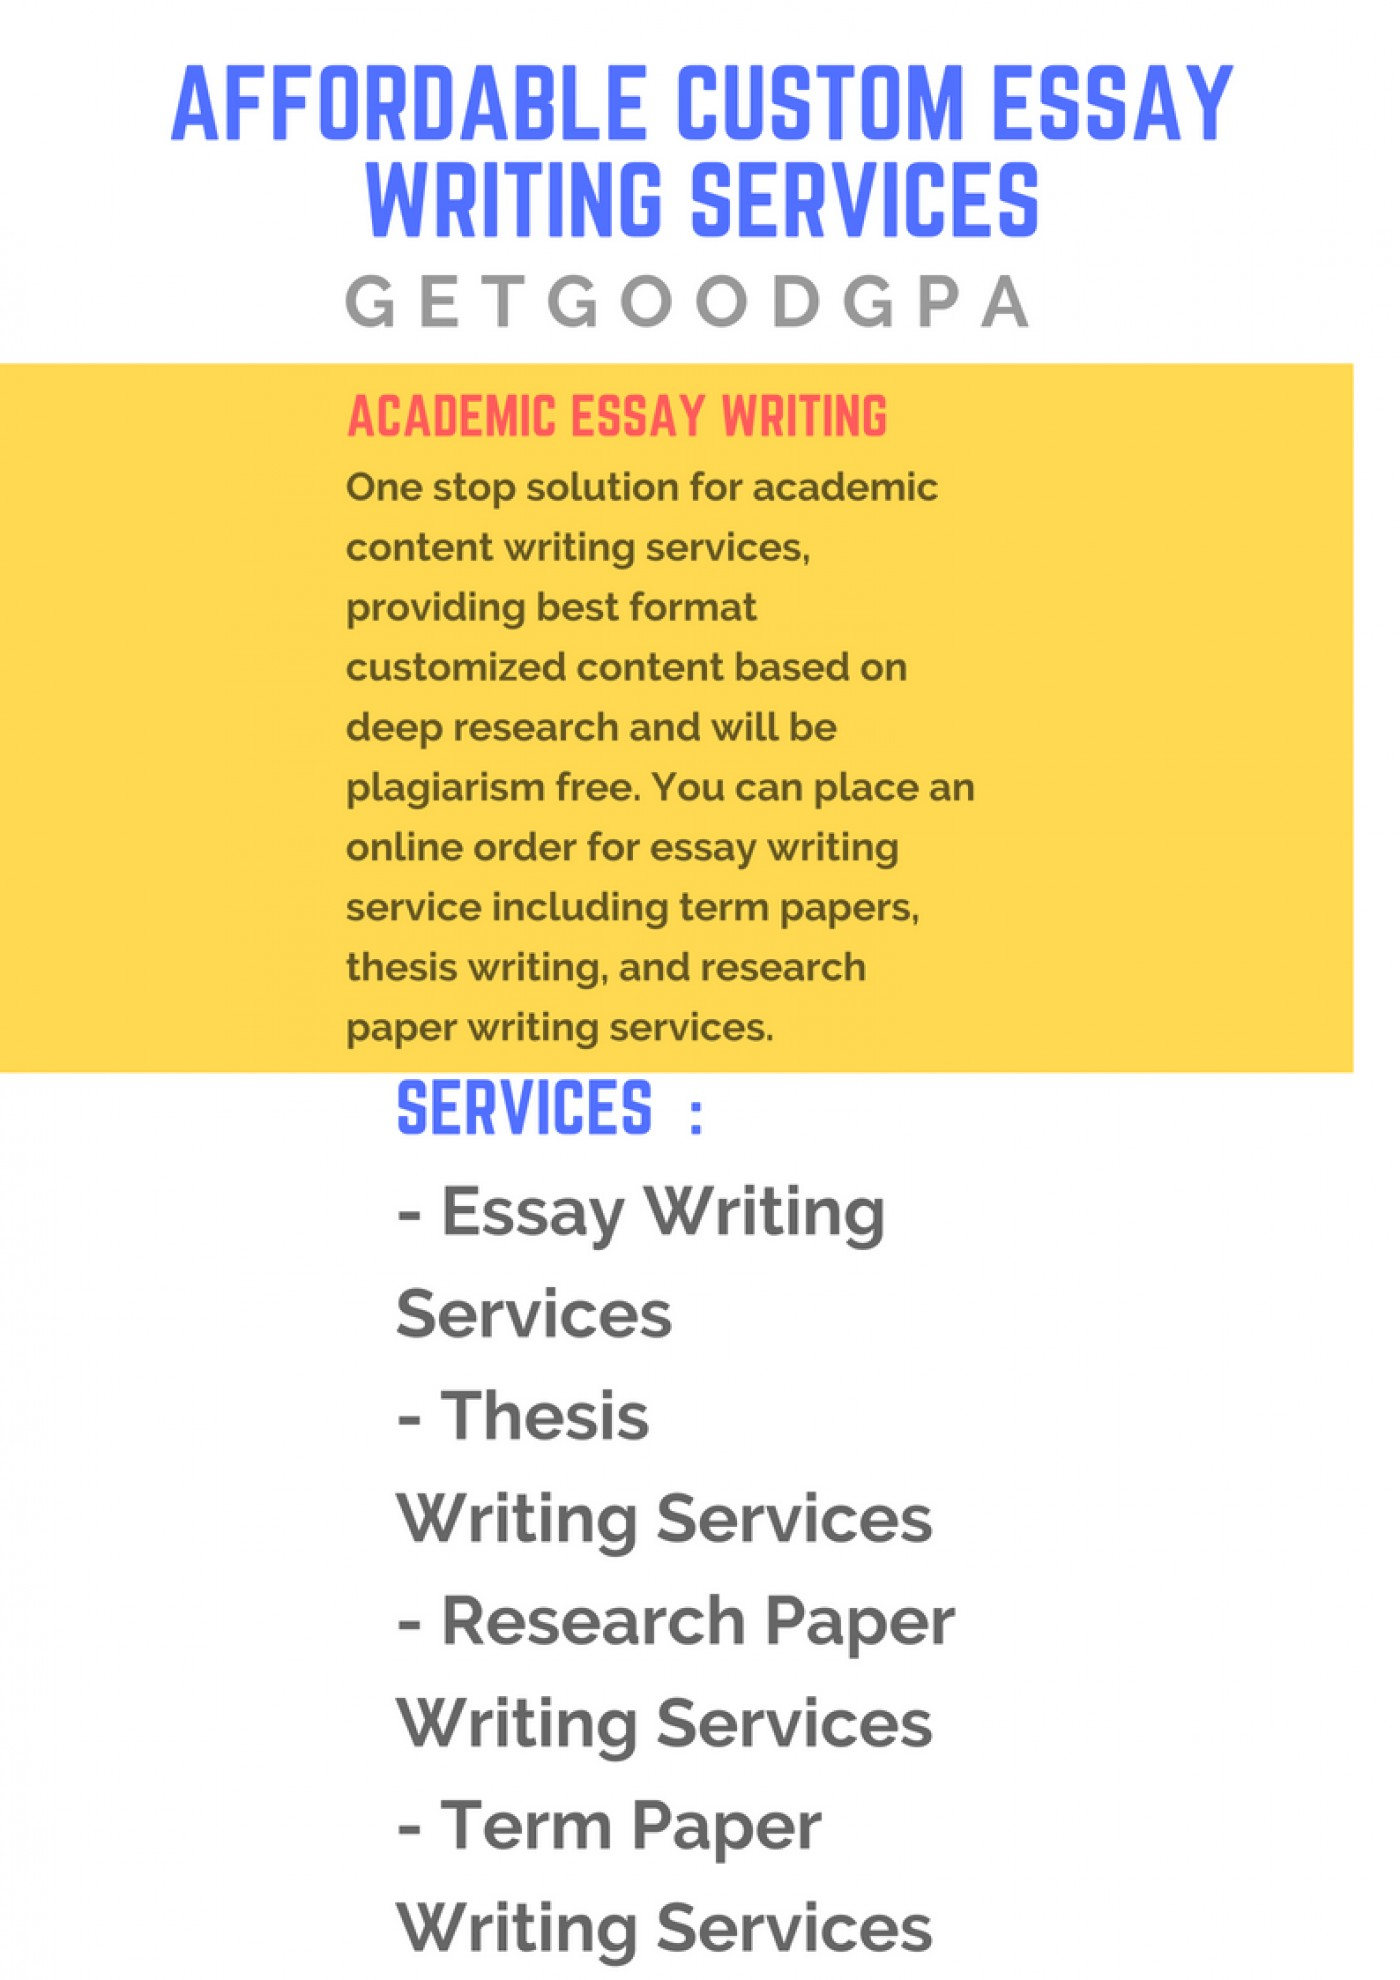 002 1p24u5izogrgxlkfzqmxvgq Research Paper Writing Dreaded Service Services In India Online Chennai 1400